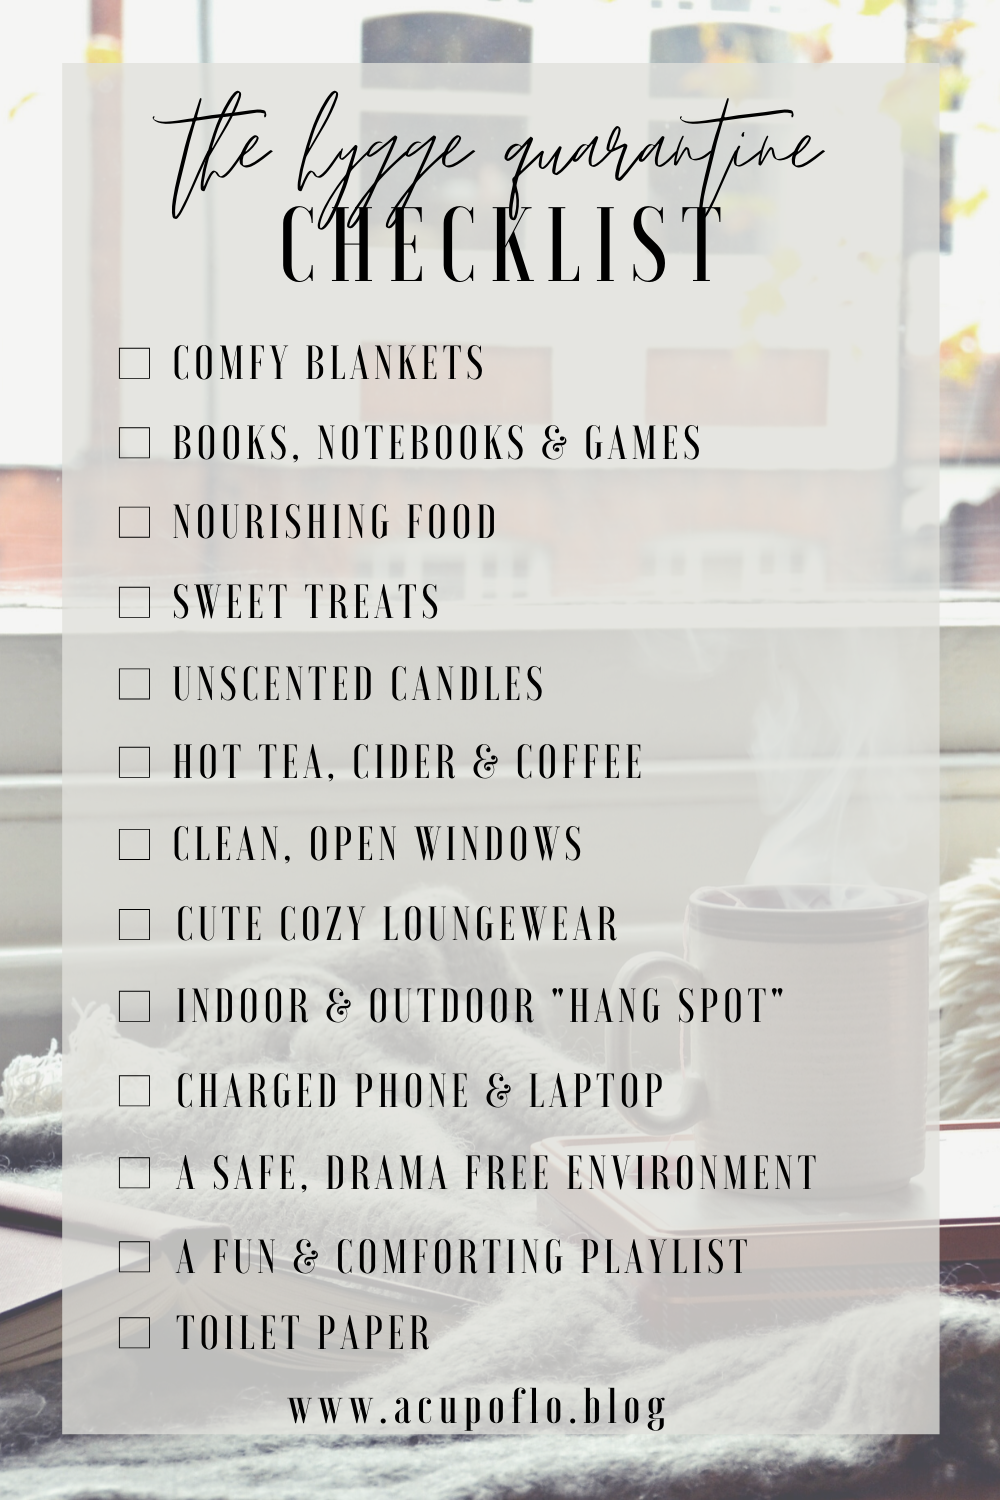 The Hygge Quarantine Checklist 13 checklist items to make sure your lockdown is as hygge as possible